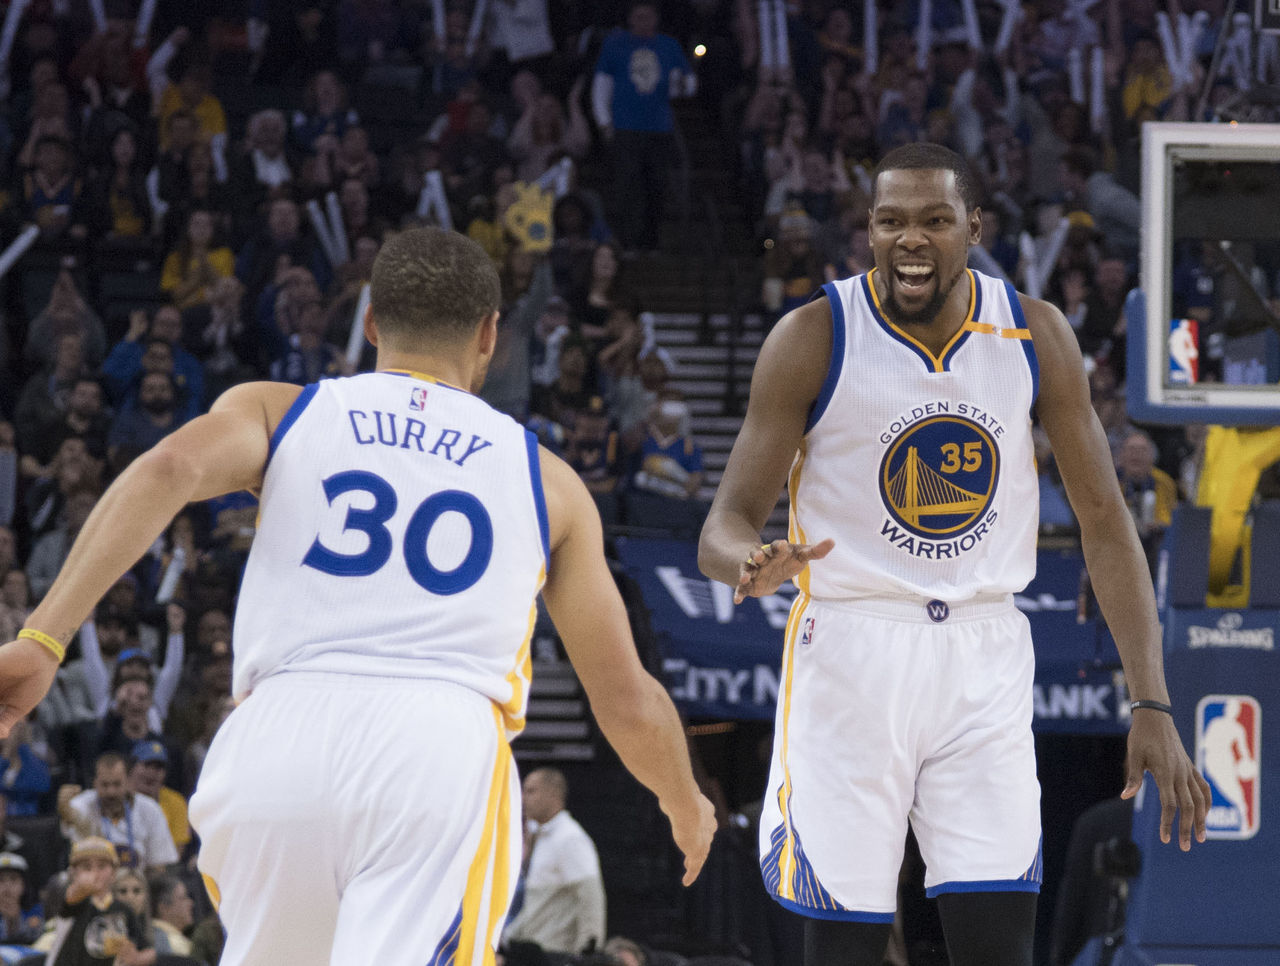 Cropped 2017 01 17t034127z 1499552956 nocid rtrmadp 3 nba cleveland cavaliers at golden state warriors